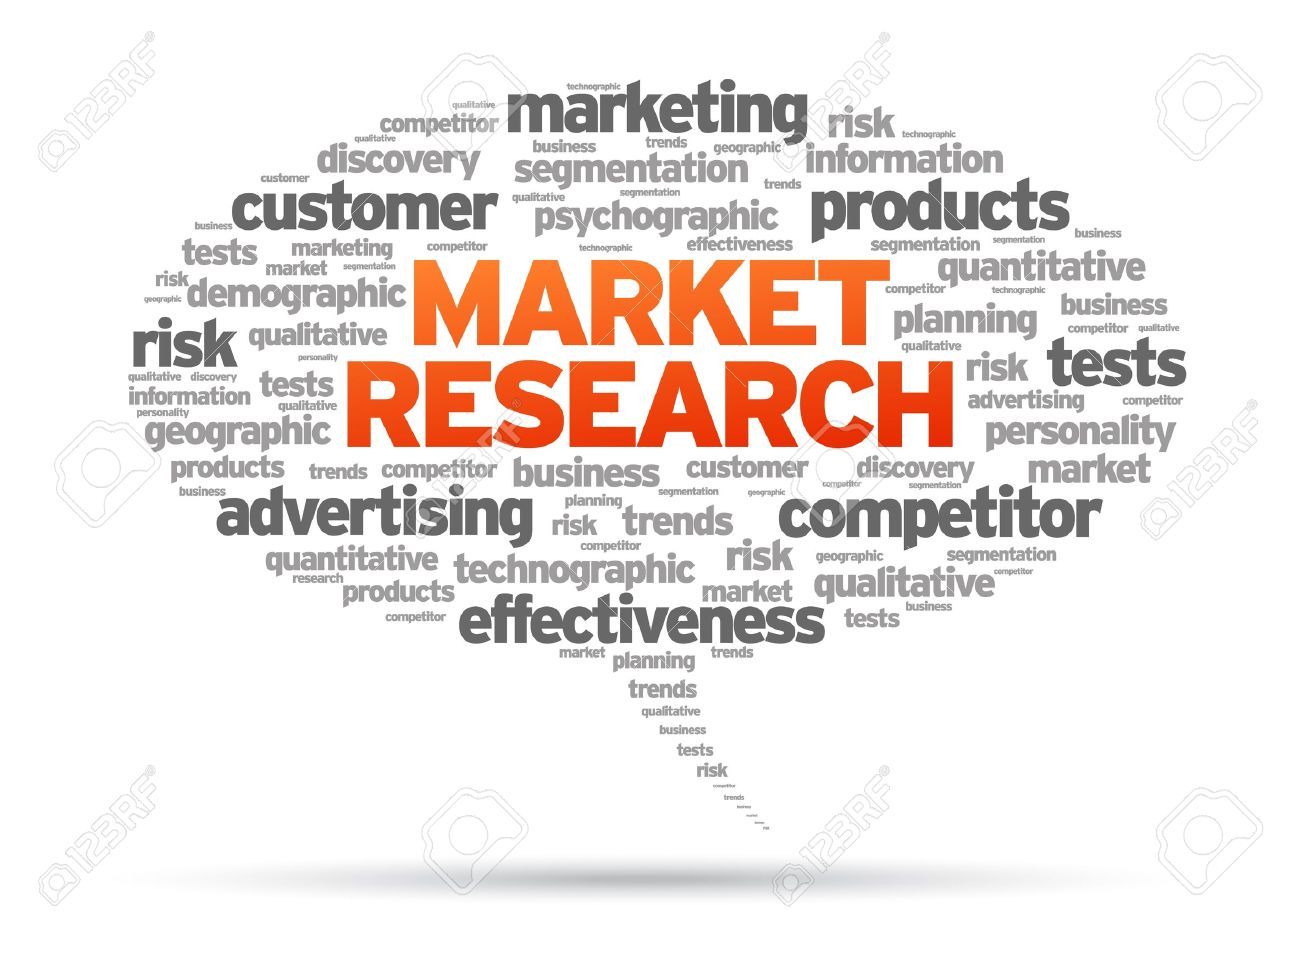 Where can I find free or very cheap market surveys results?